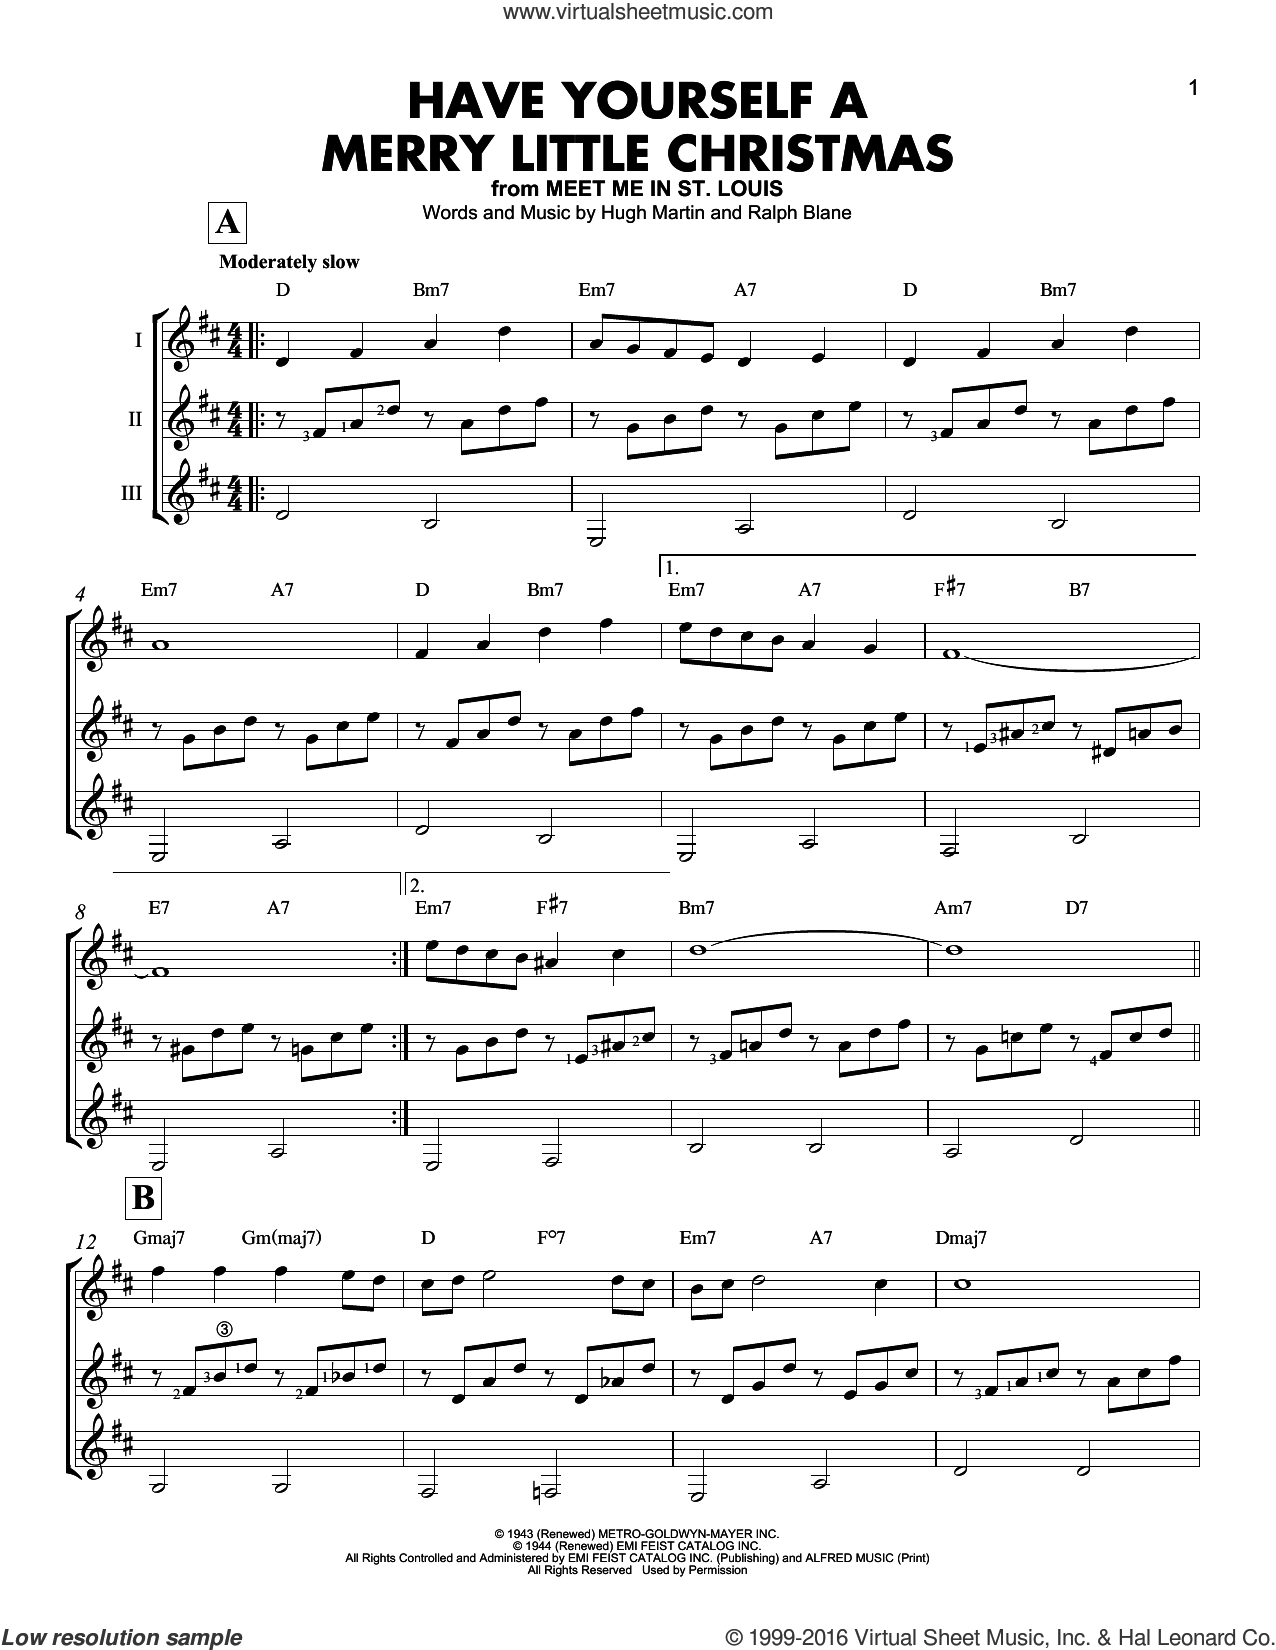 Have Yourself A Merry Little Christmas sheet music for guitar ensemble by Hugh Martin